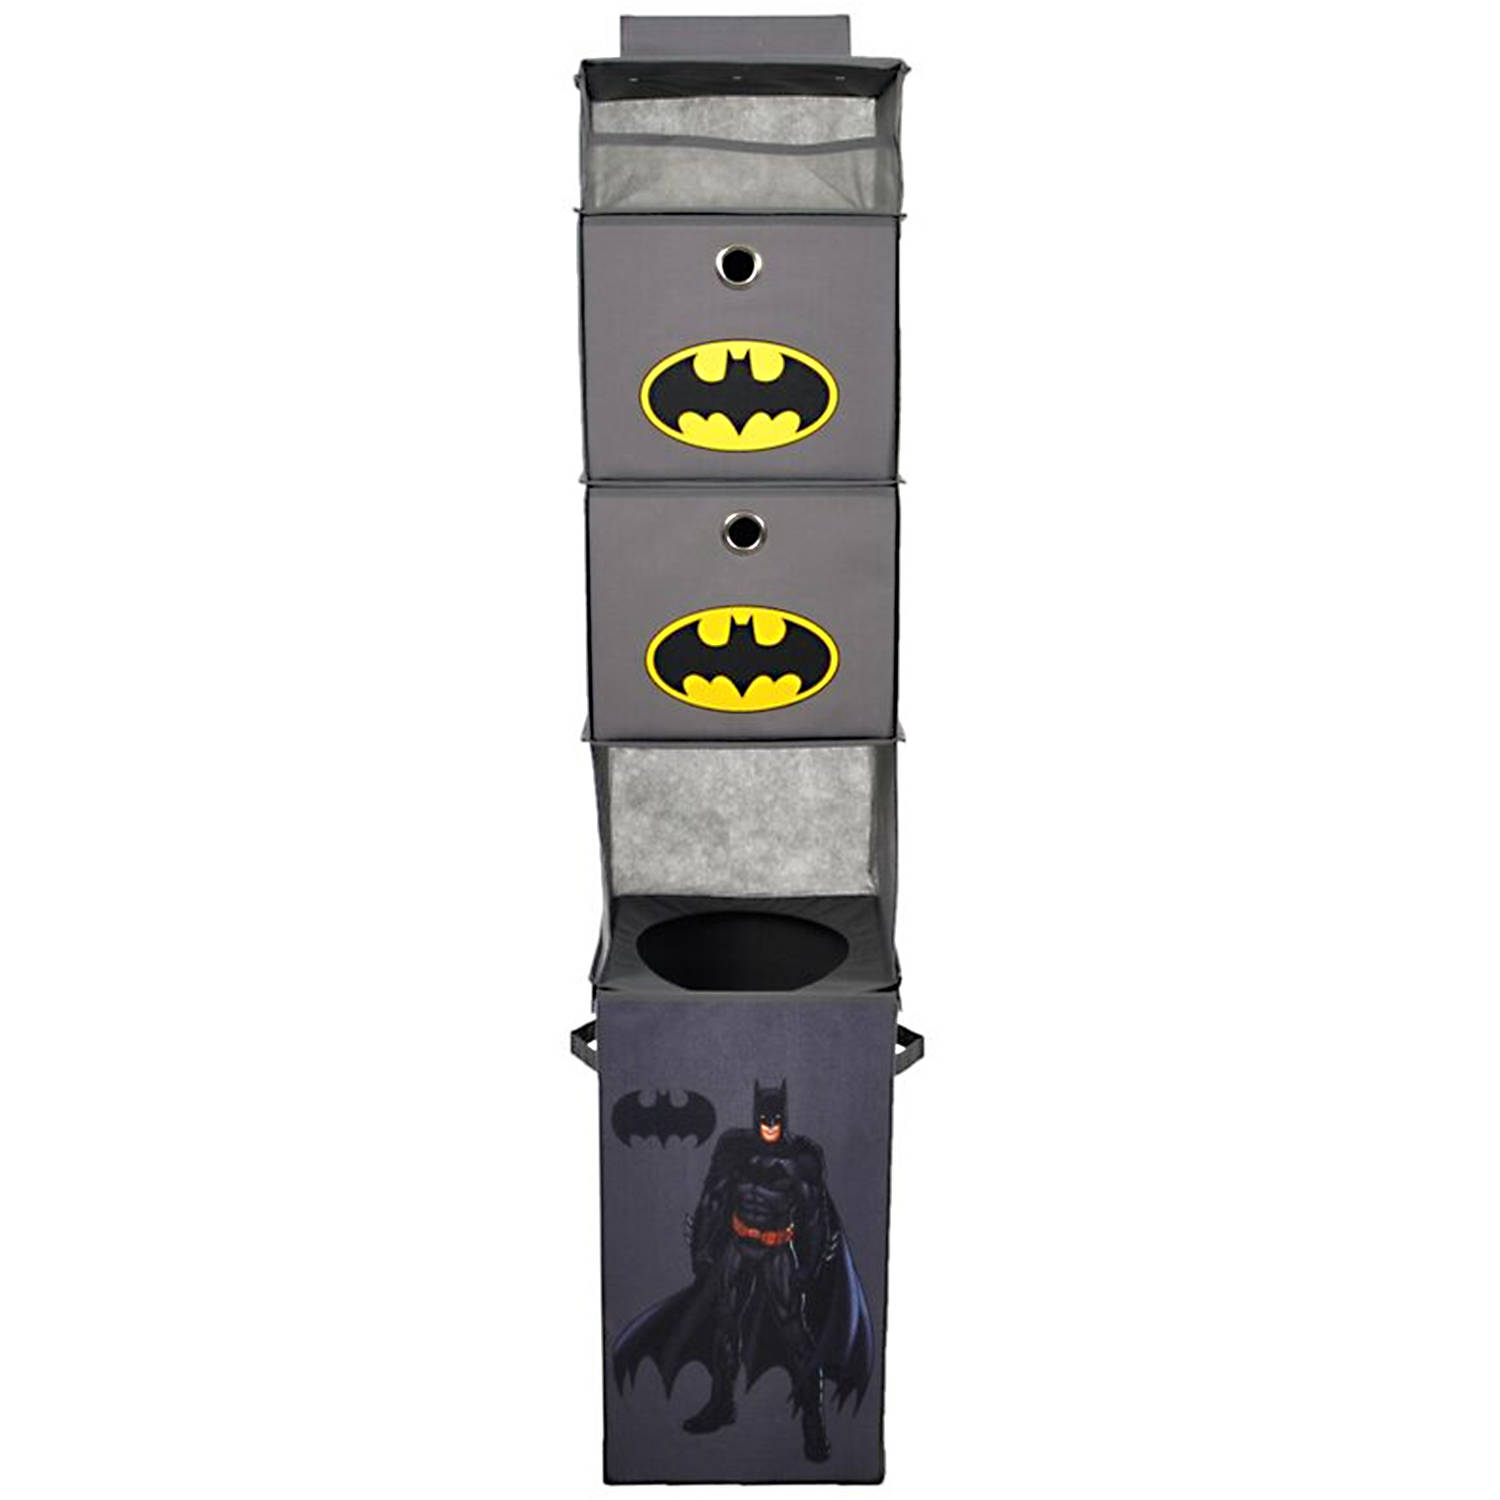 Batman Gray Closet Hanging Organizer with 2 Storage Bins by Modern Littles